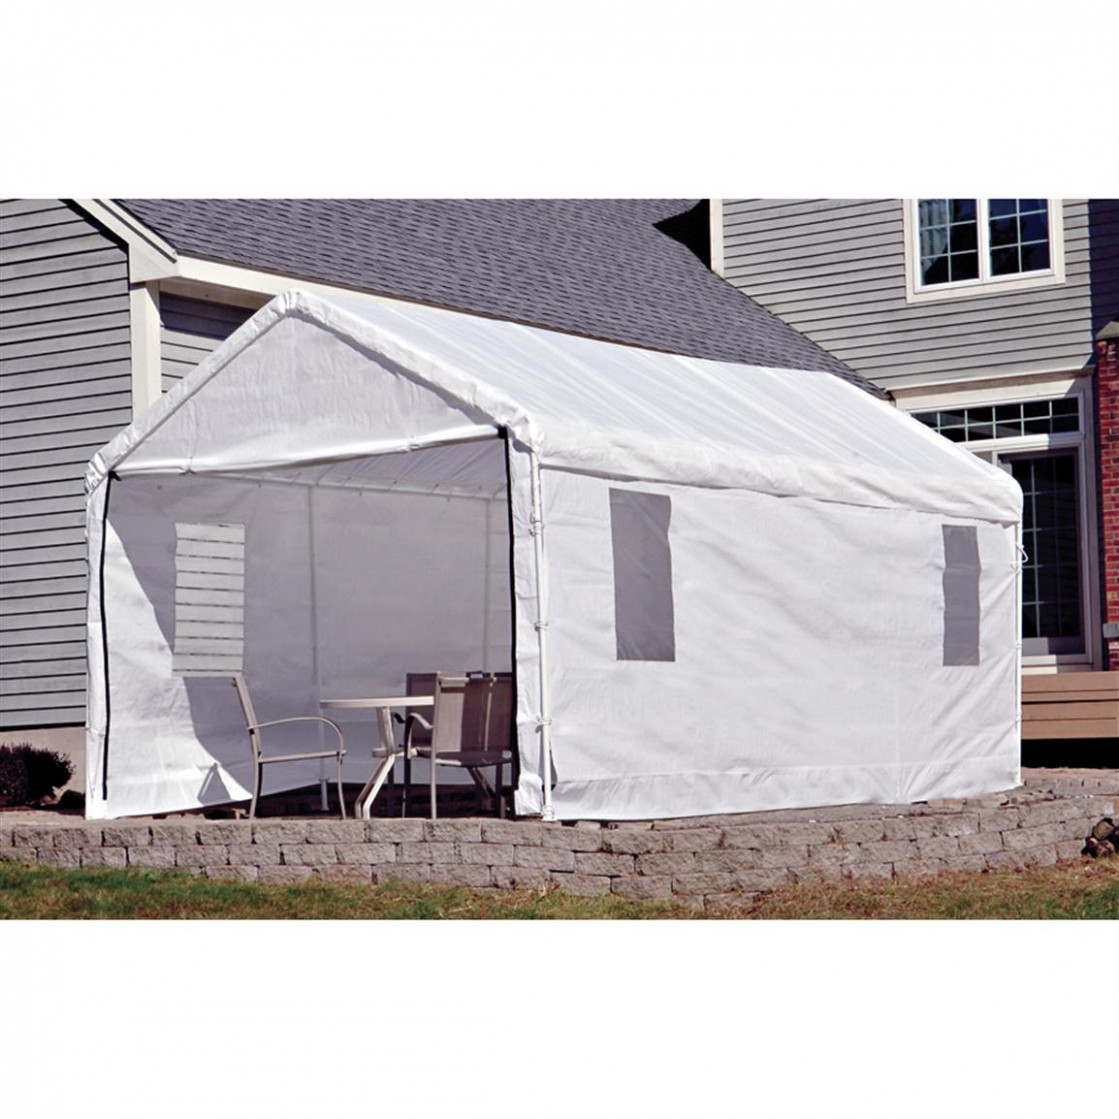 Portable Carport Walmart — Umpquavalleyquilters.com ..